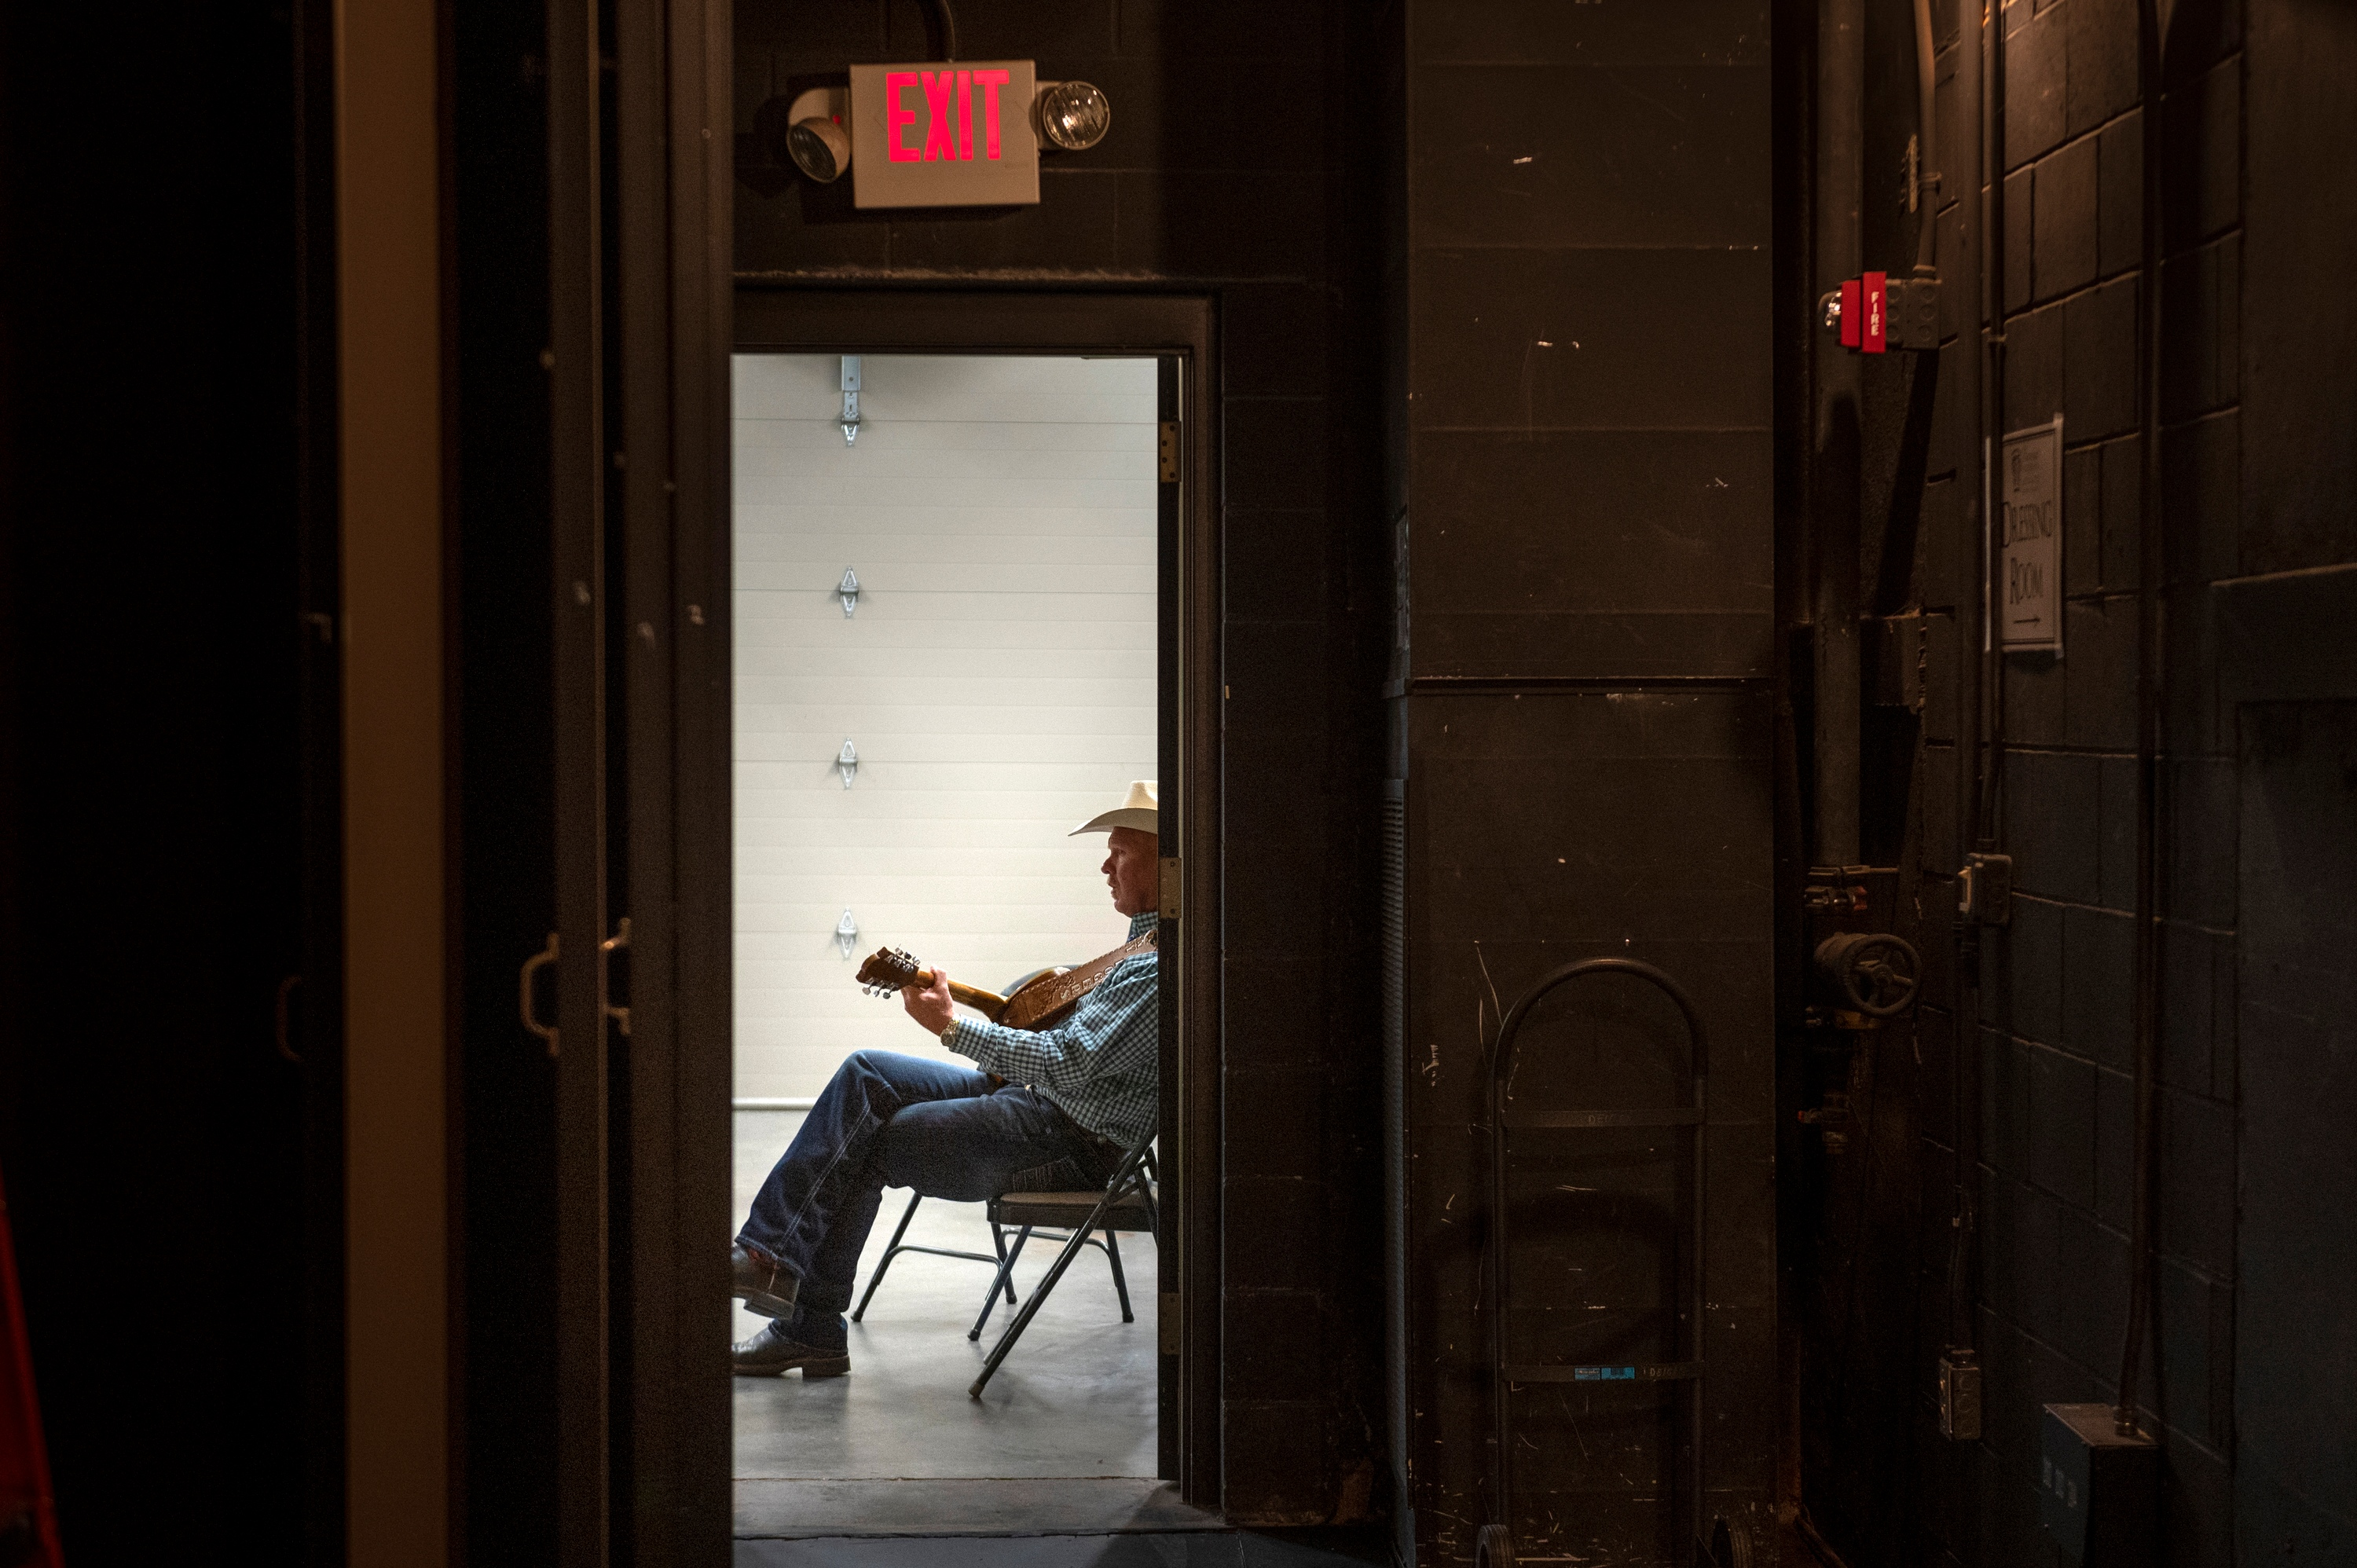 Bar J Wranglers musician Danny Rogers warms up backstage before a show in Kearney, Neb., on Thursday, Oct. 7, 2021.